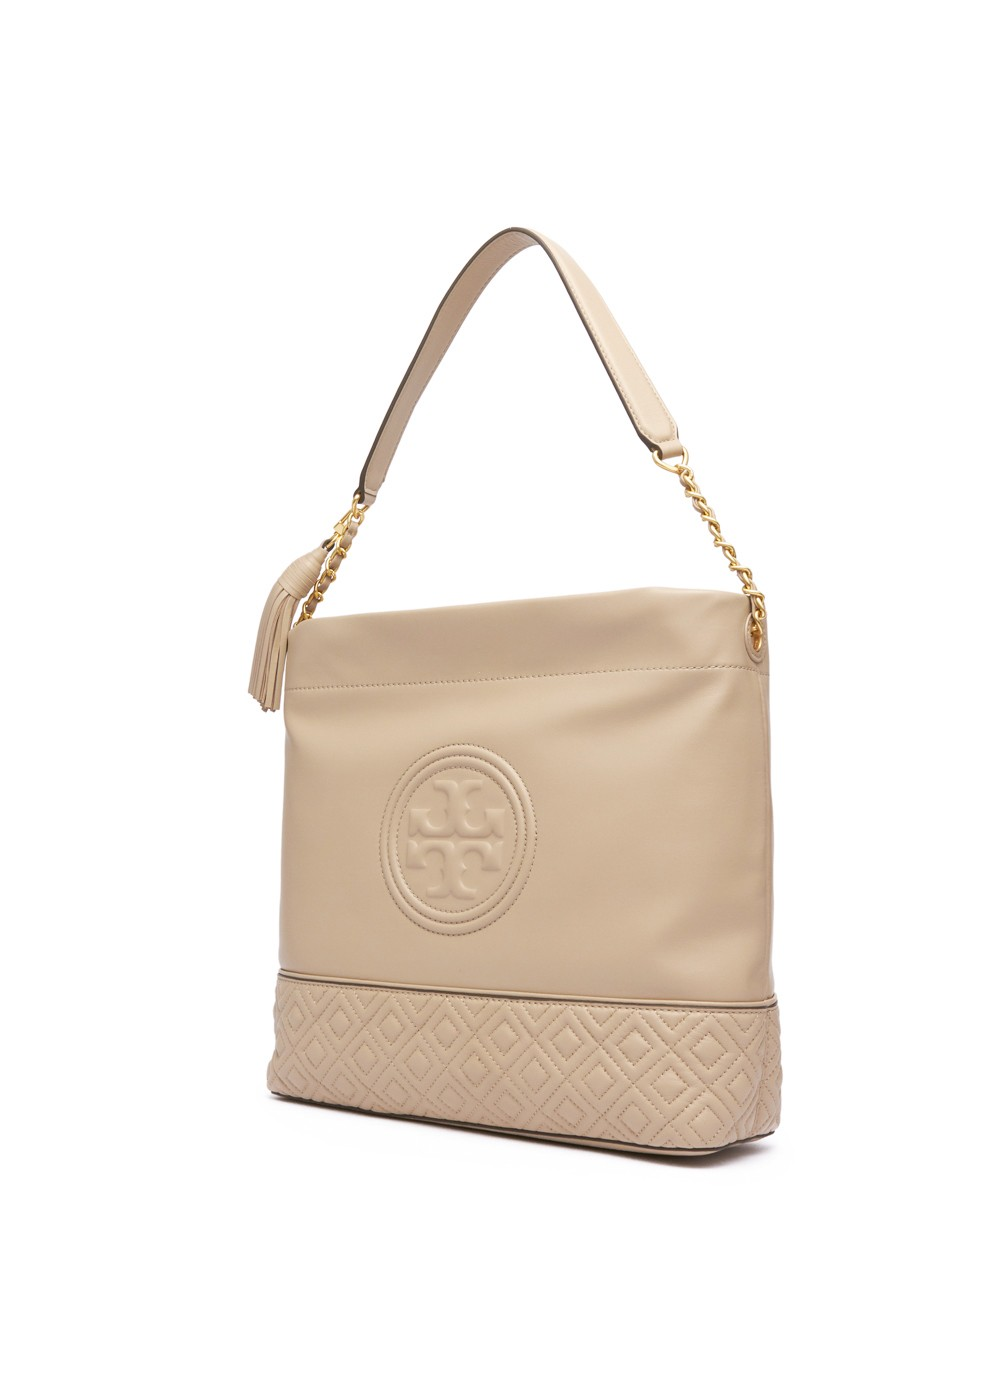 【最大47%OFF】FLEMING HOBO|LIGHT TAUPE|トートバッグ|Tory Burch